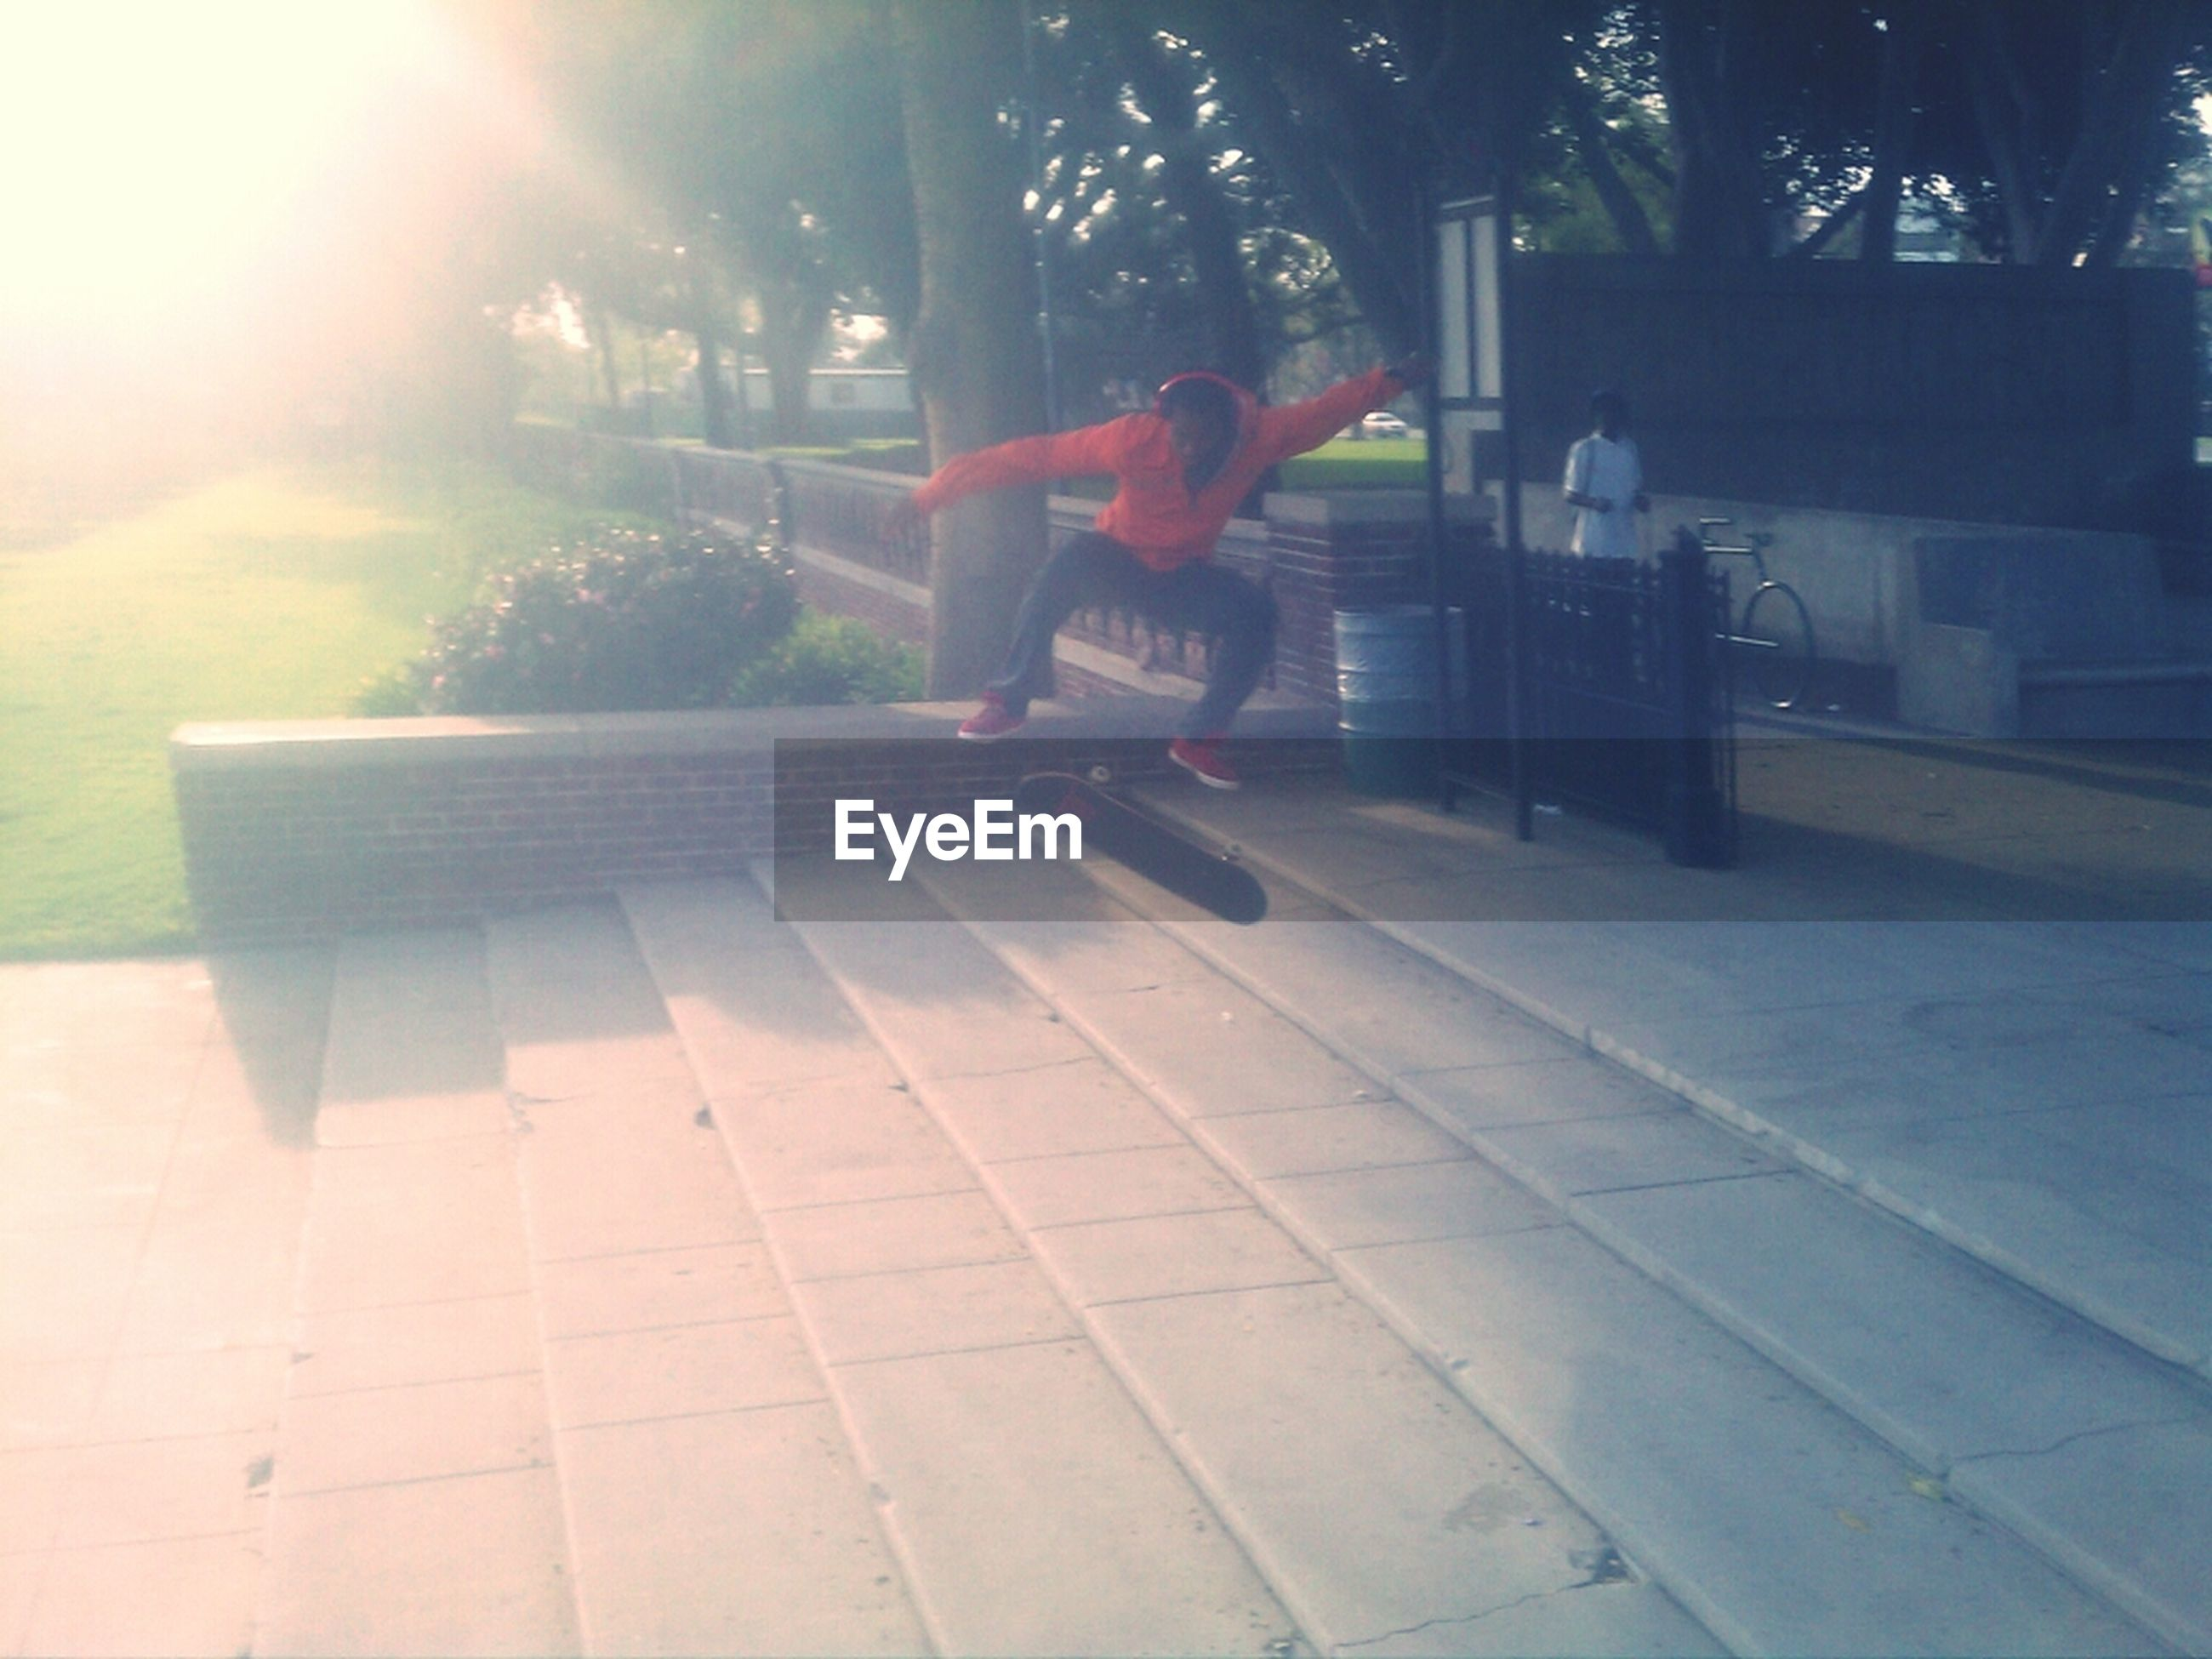 sunlight, tree, sunbeam, full length, shadow, leisure activity, built structure, lifestyles, outdoors, day, lens flare, architecture, building exterior, sunny, park - man made space, chair, bench, sidewalk